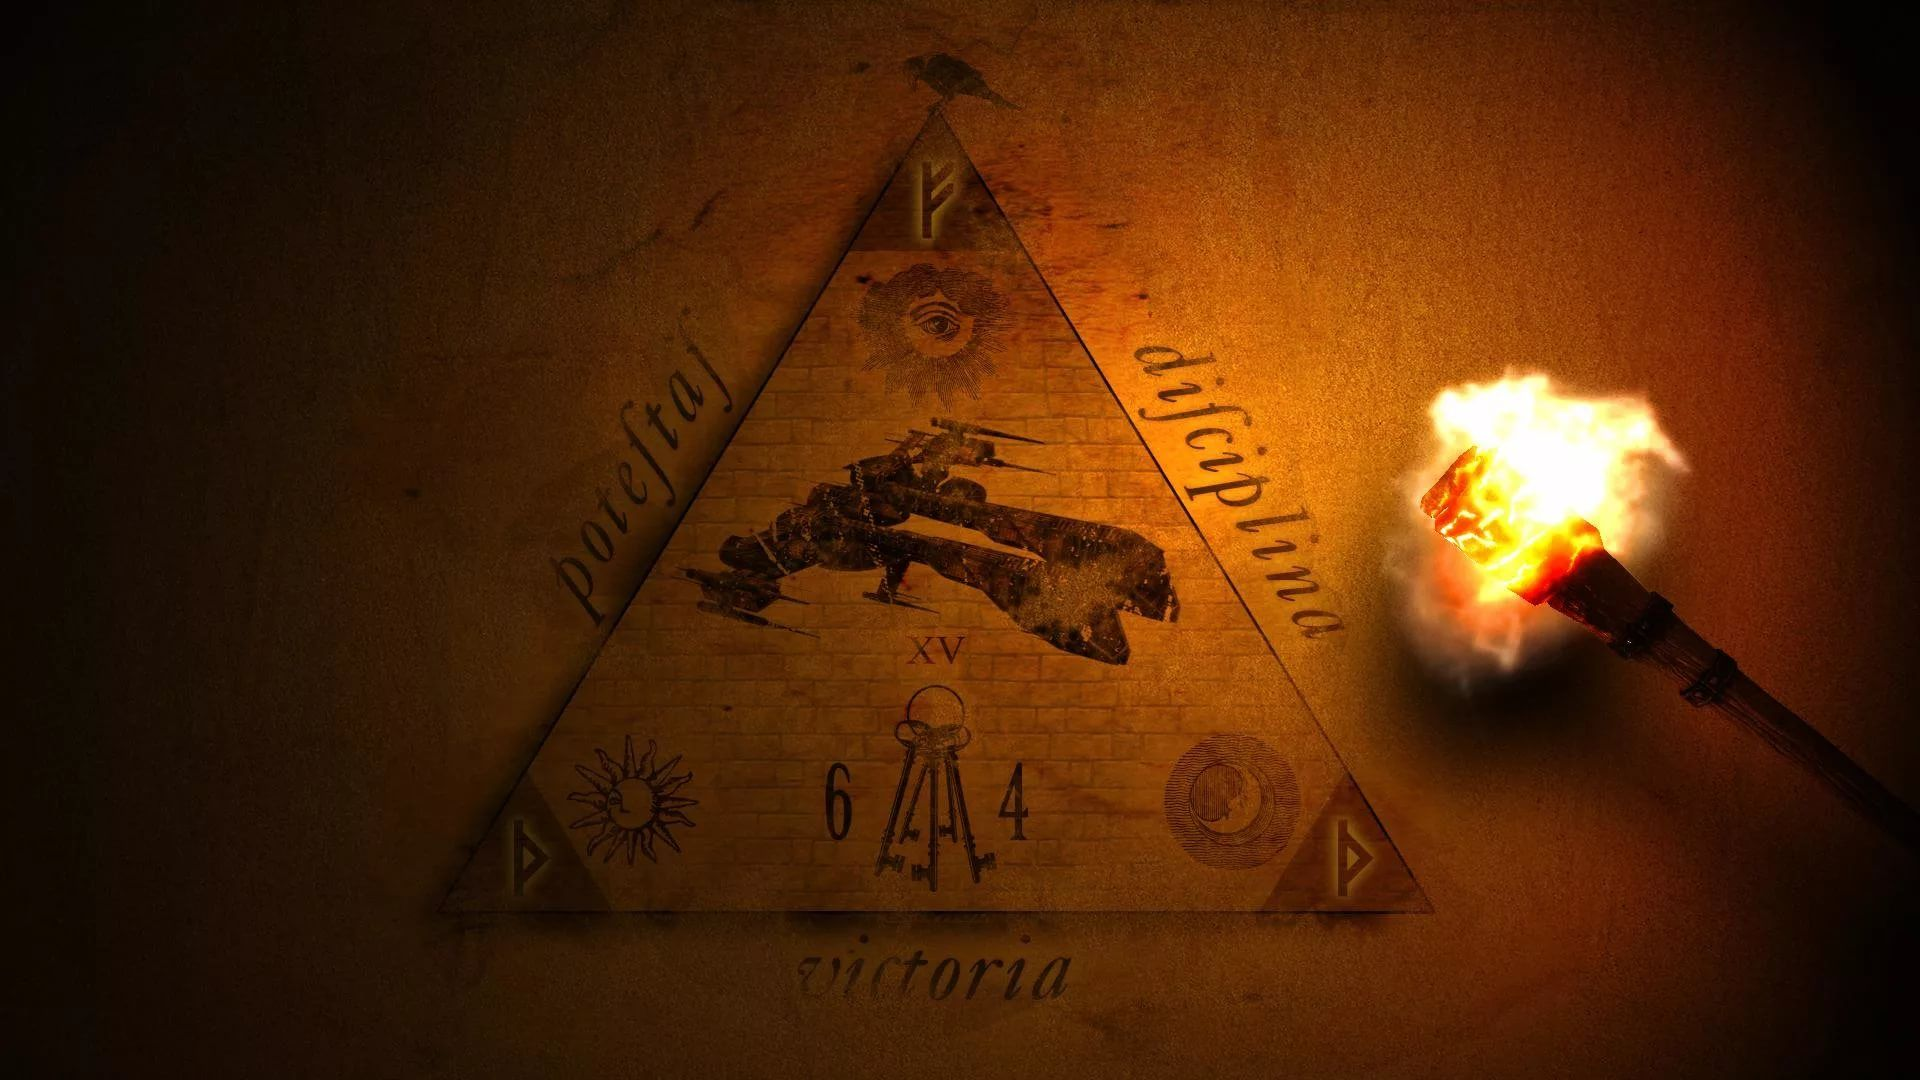 Freemason wallpaper picture hd